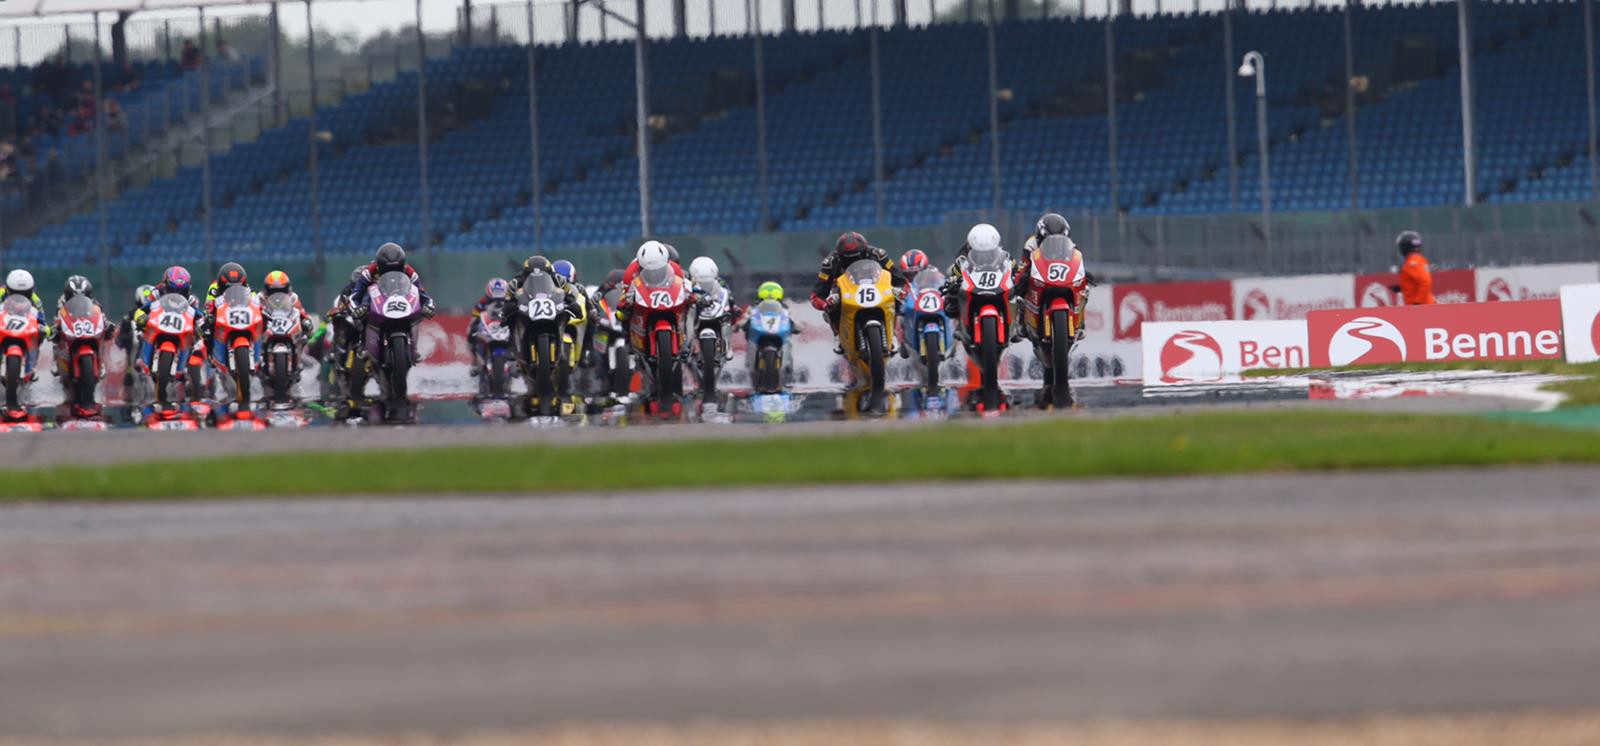 The start of British Talent Cup Race Two at Silverstone. Photo courtesy Dorna.